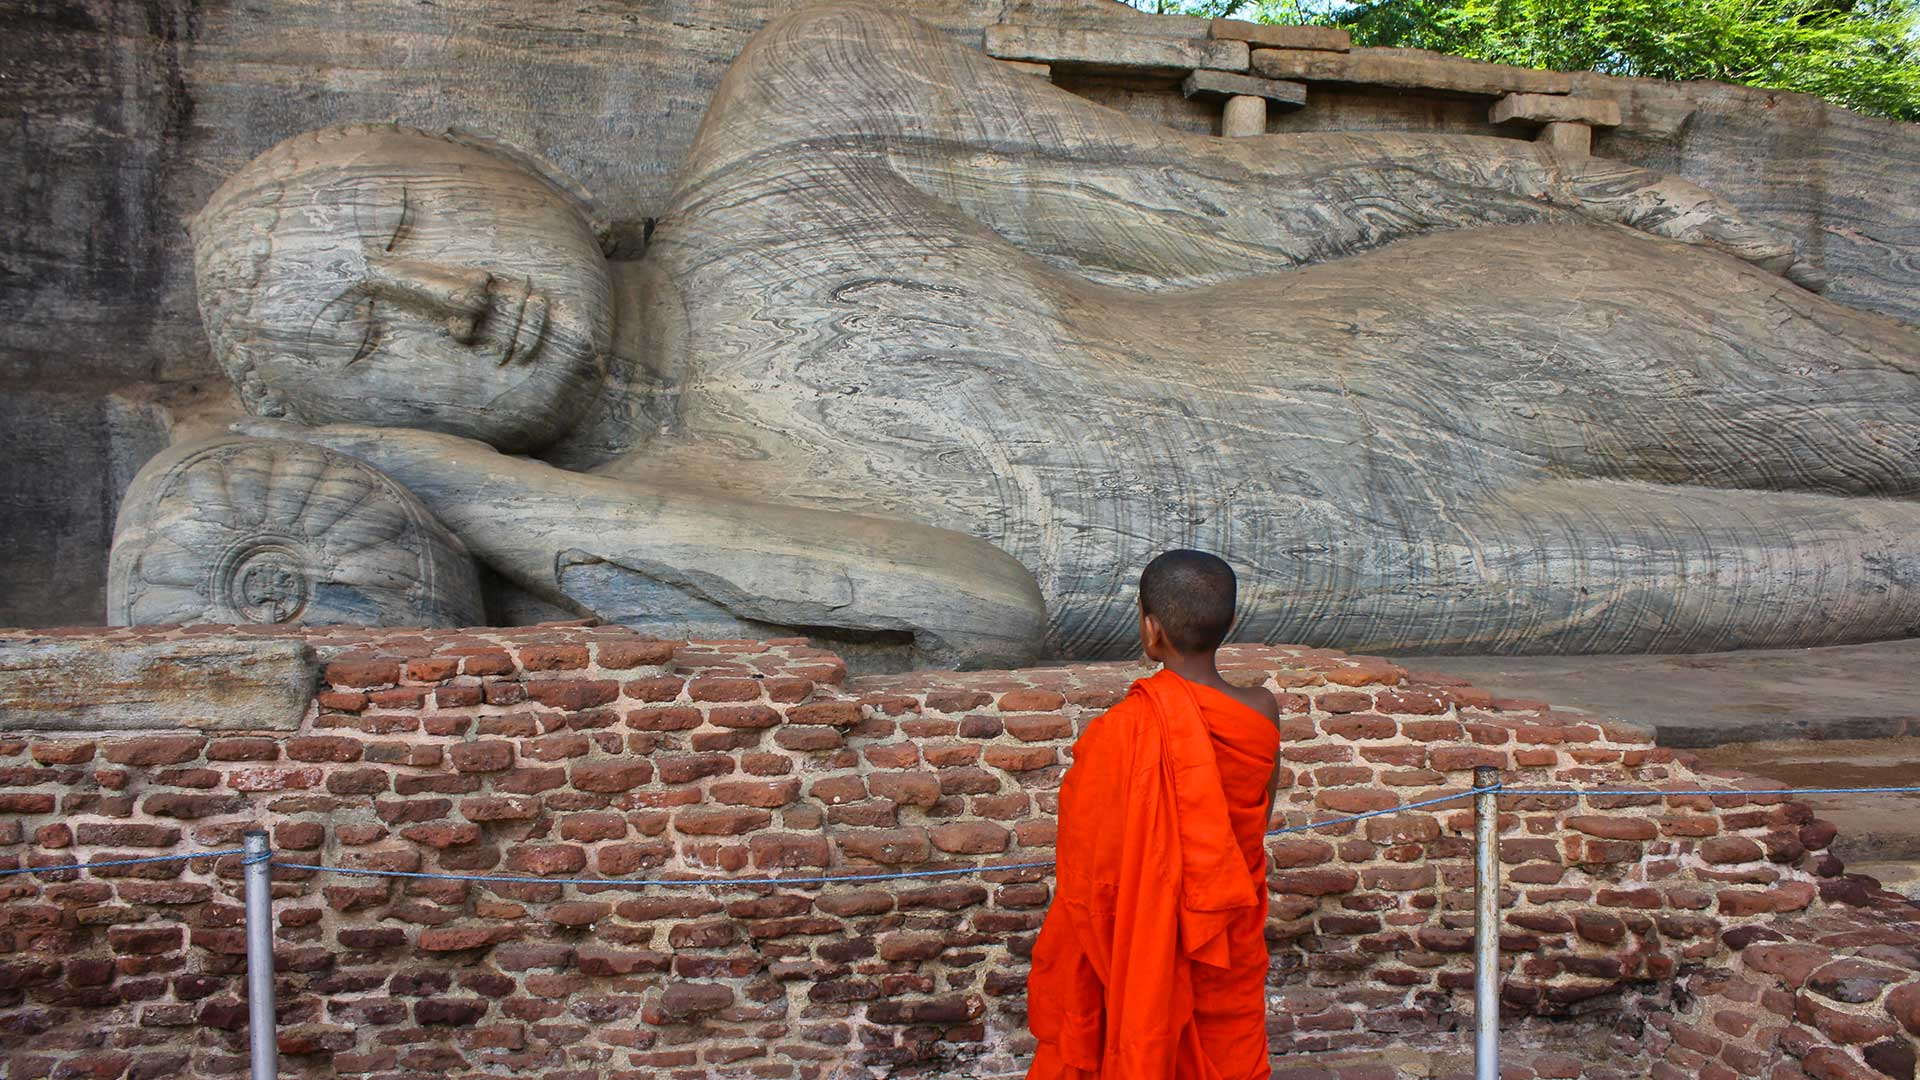 Child-Monk-Viewing-Giant-Reclining-Buddha,-Sri-Lanka